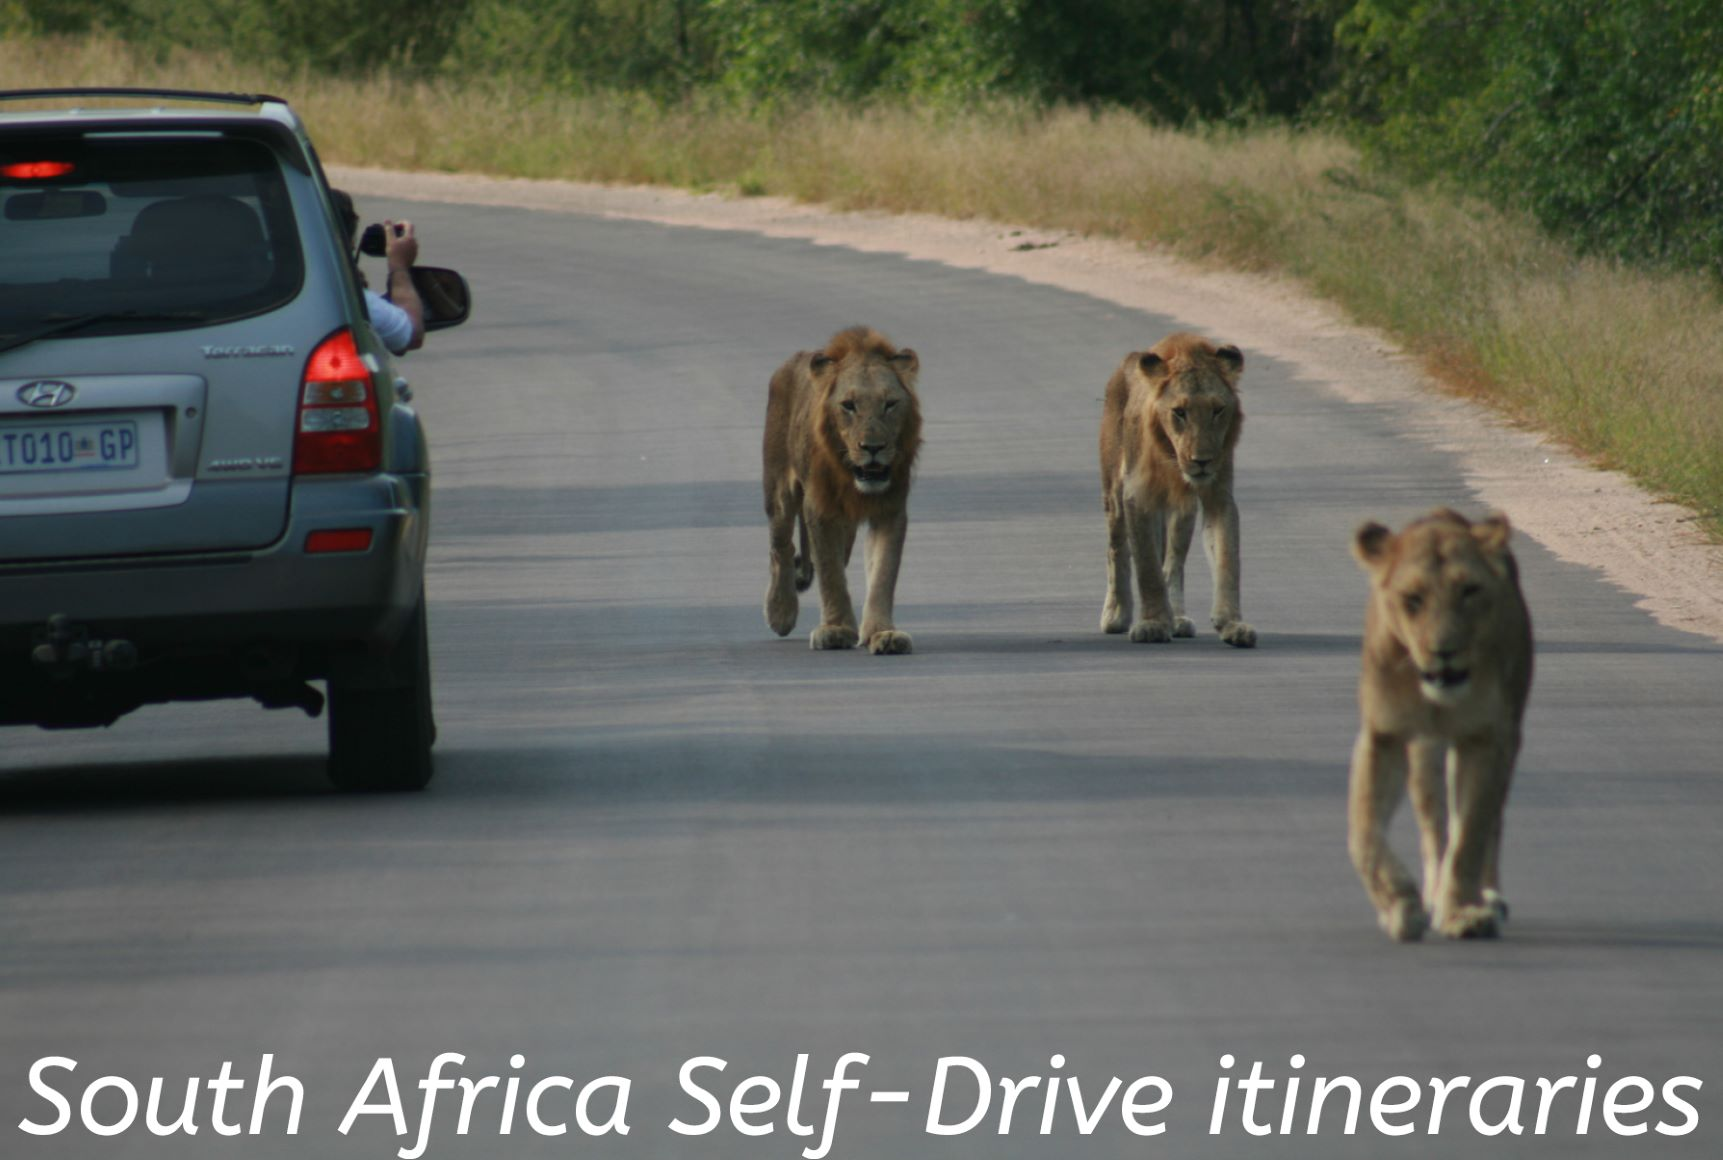 South Africa Self-Drive itineraries